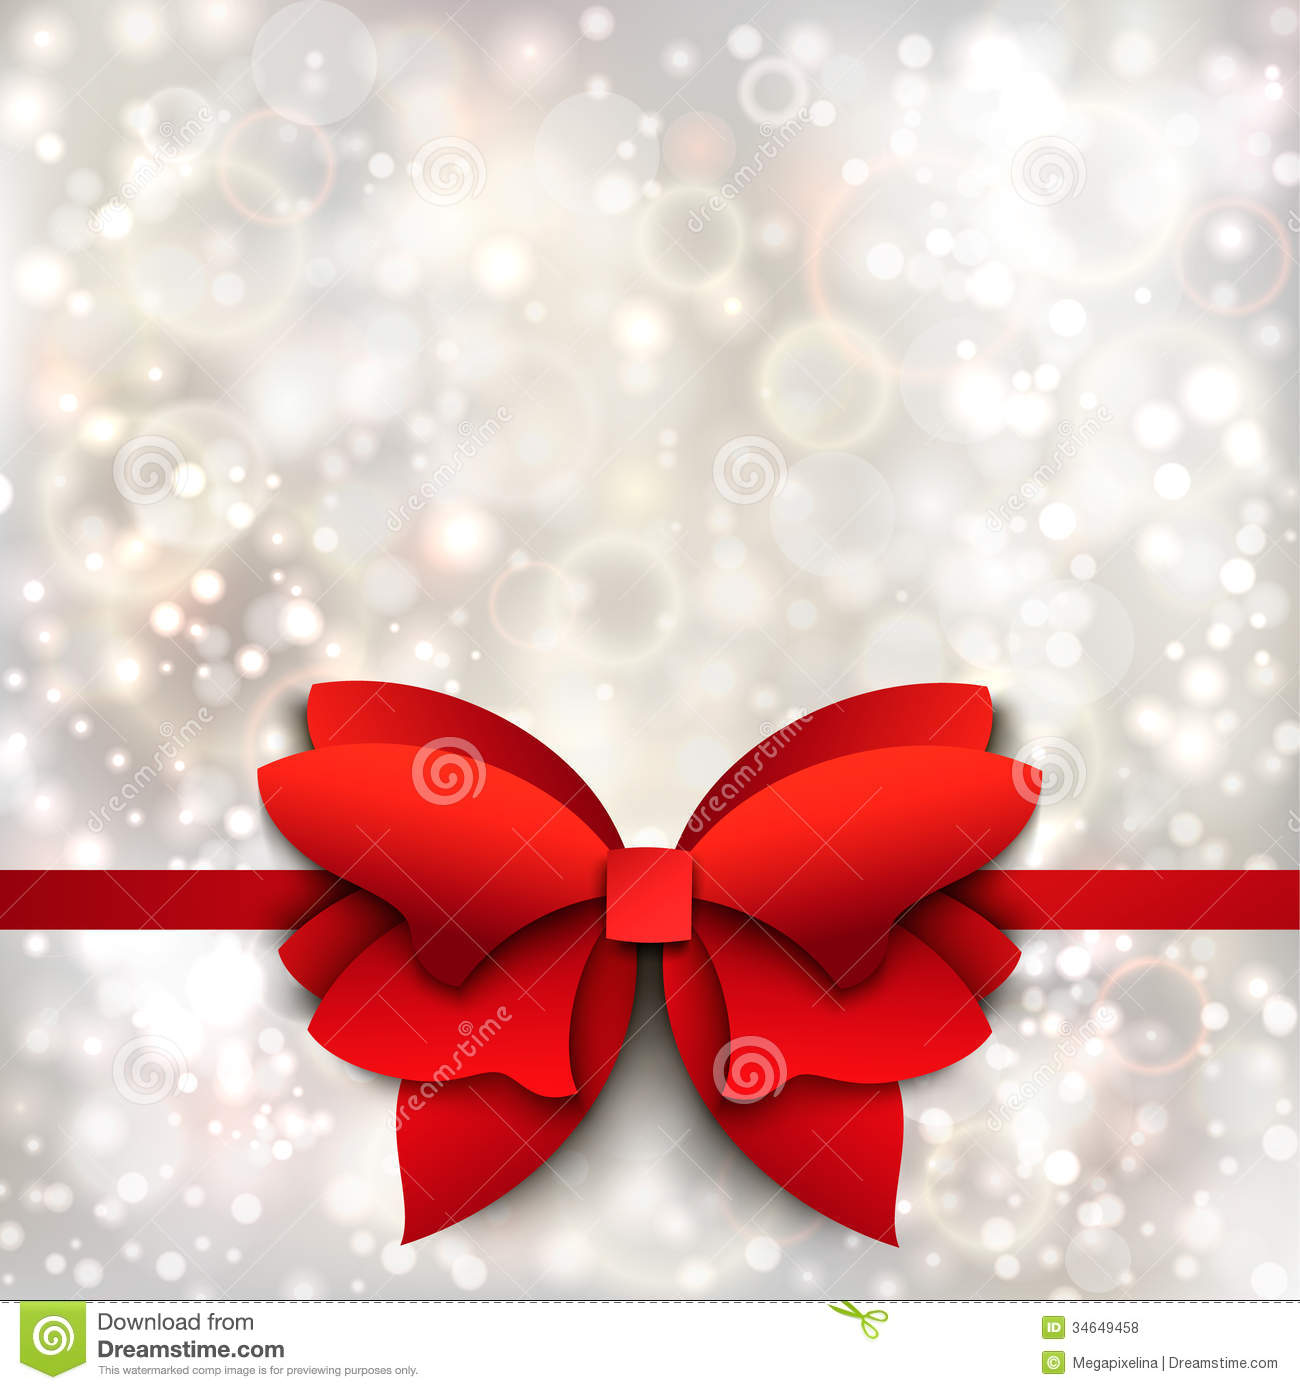 Abstract Christmas Background With Red Bow Royalty Free Stock Photos ...